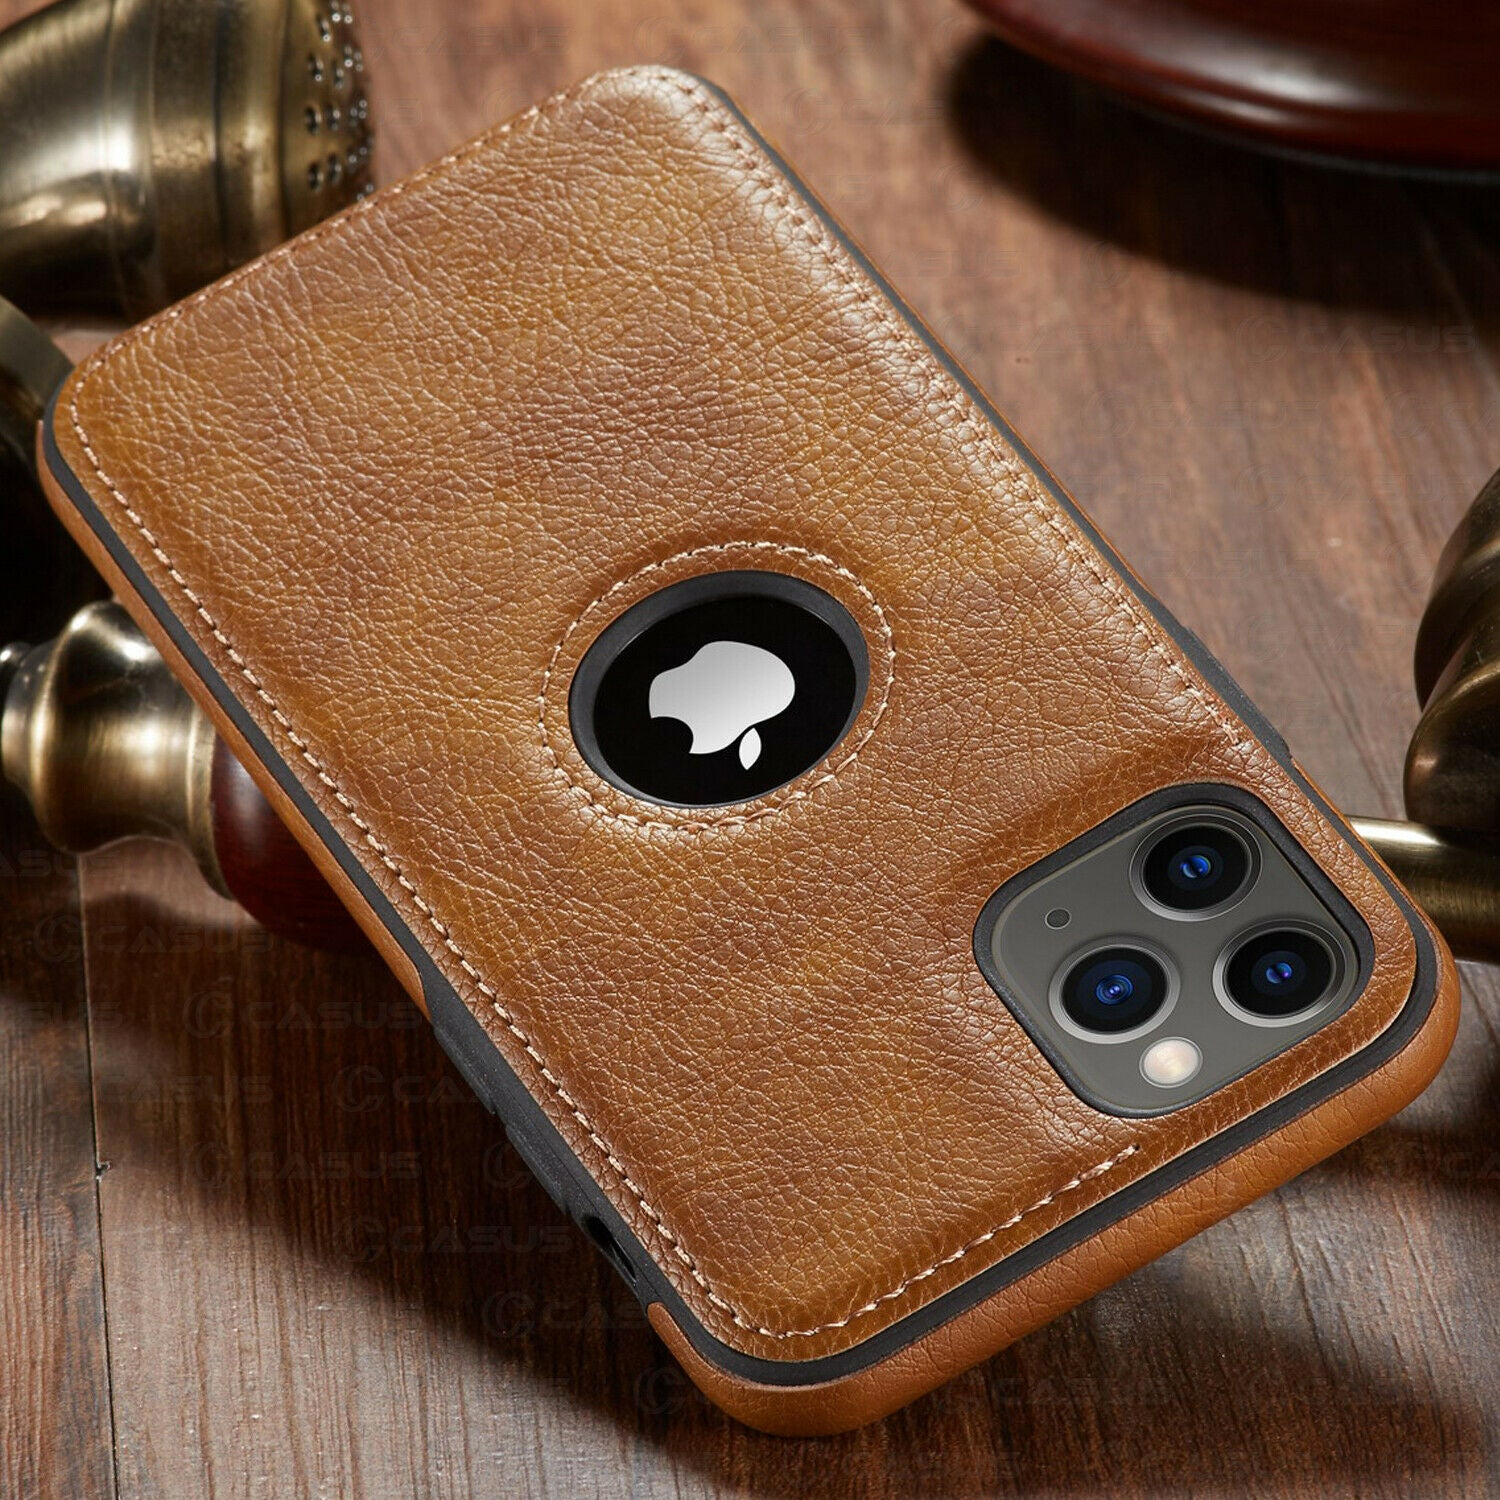 Luxury Vintage Leather Stitching Wallet Case For iPhone 11 11 Pro 11 Pro Max Case PU Leather Magnetic Flip Cover Business Case for iPhone 12 Pro Max XR X 8 7 6 6S